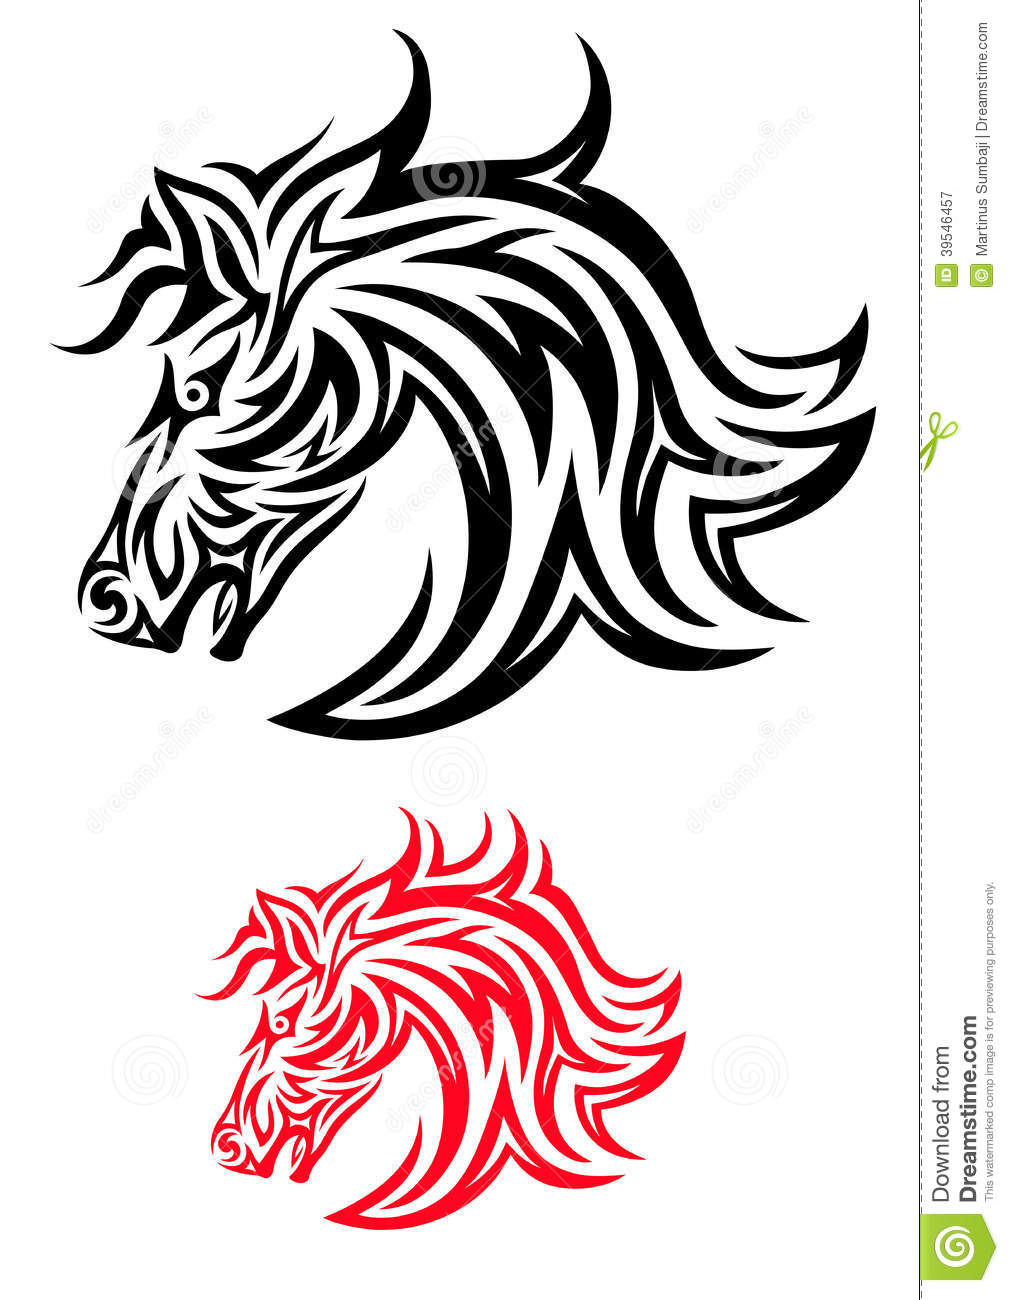 horse tribal stock vector image of clip decor icon 39546457. Black Bedroom Furniture Sets. Home Design Ideas